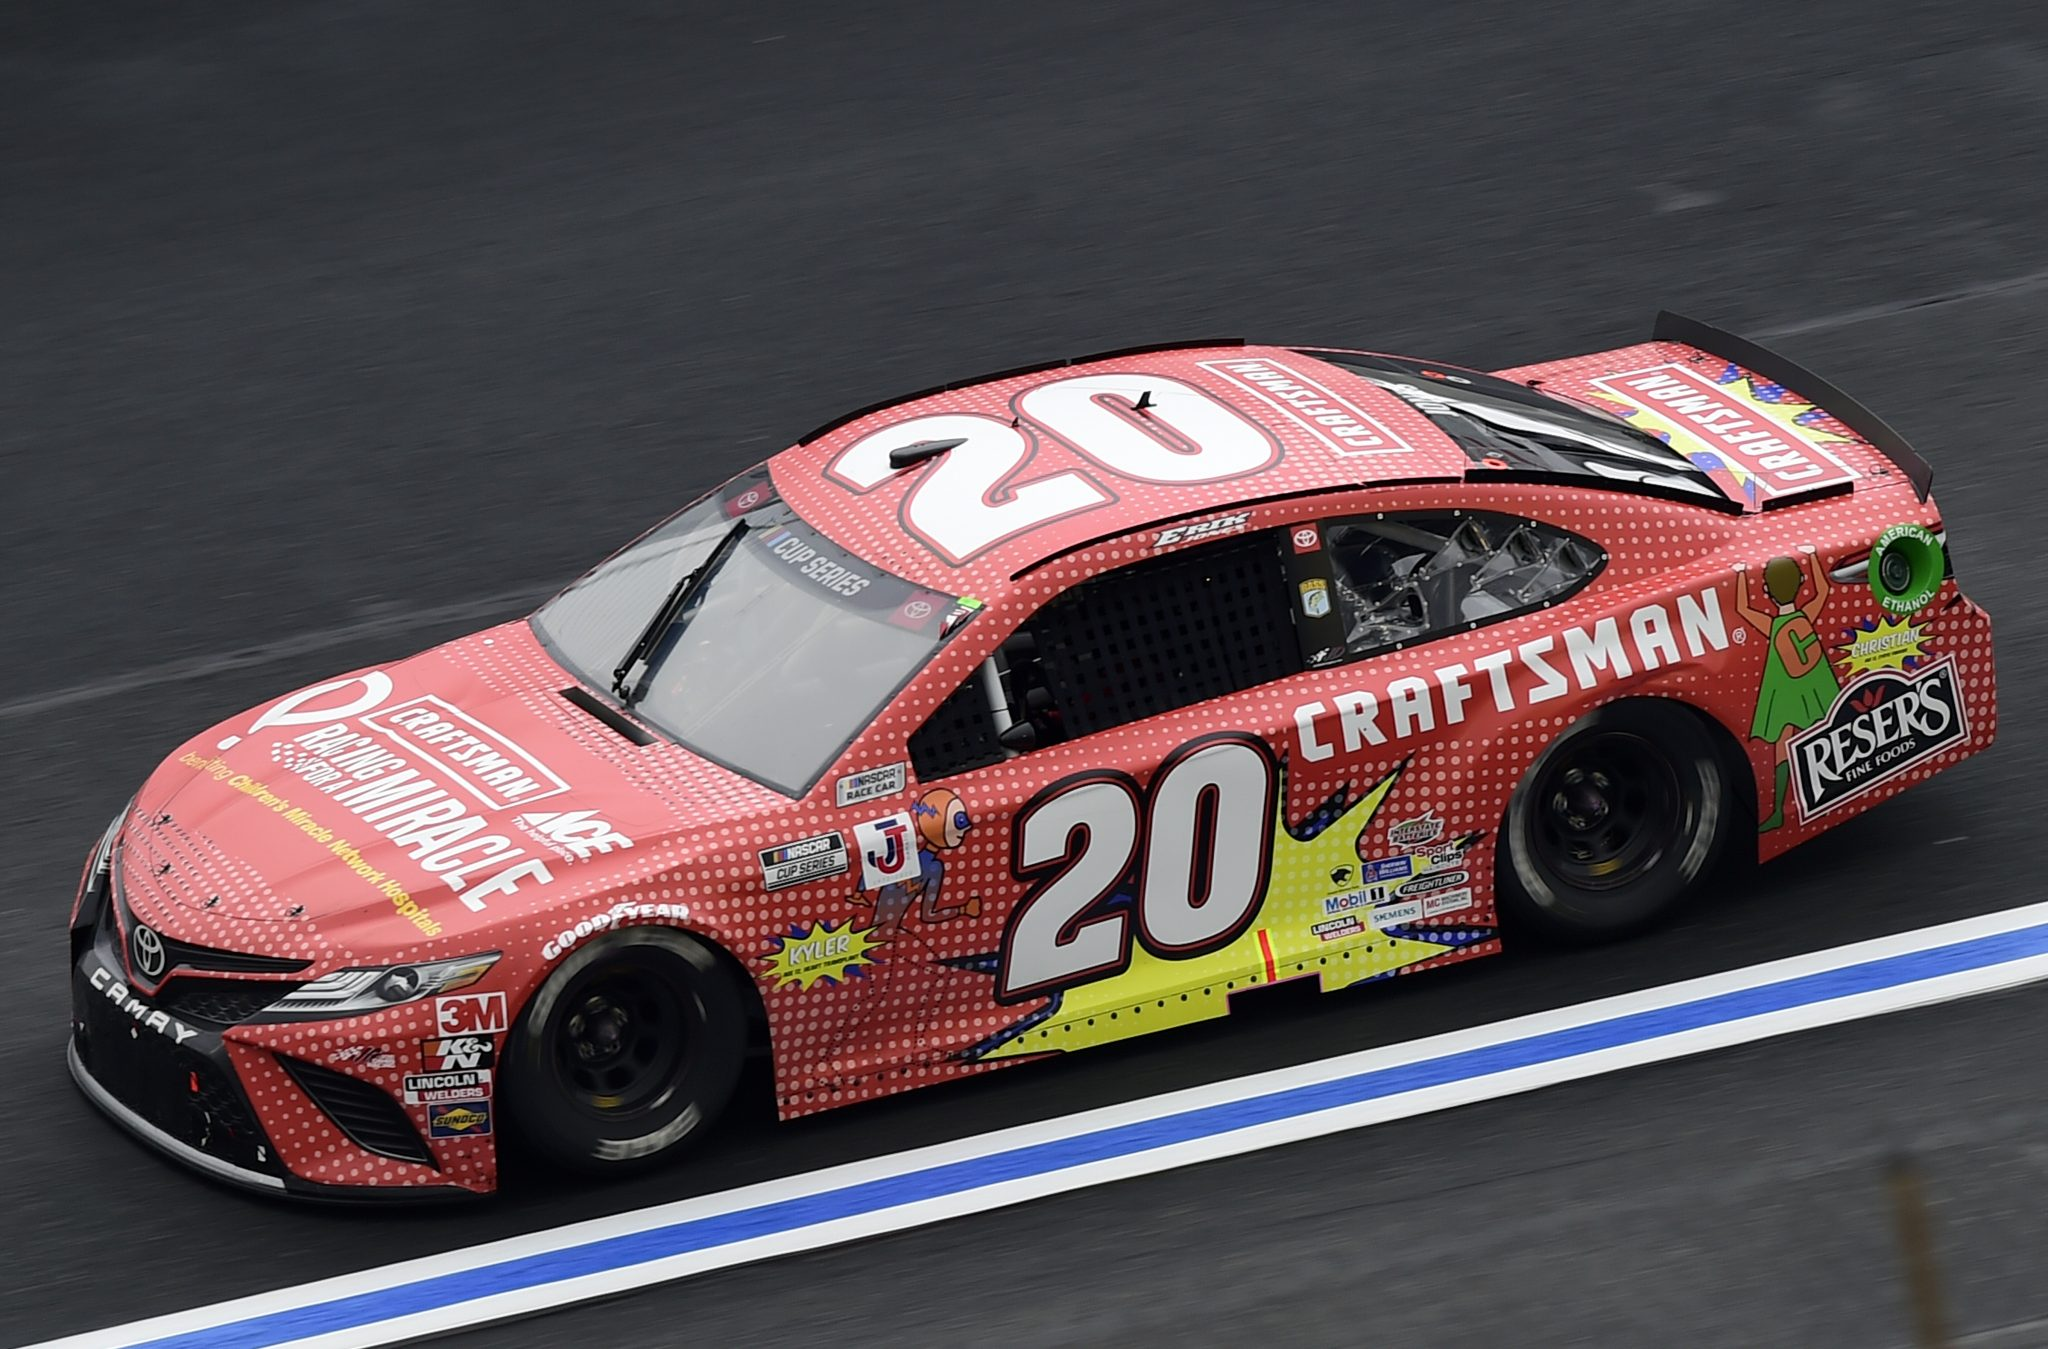 CONCORD, NORTH CAROLINA - OCTOBER 11: Erik Jones, driver of the #20 Craftsman ACE/CMN Toyota, drives during the NASCAR Cup Series Bank of America ROVAL 400 at Charlotte Motor Speedway on October 11, 2020 in Concord, North Carolina. (Photo by Jared C. Tilton/Getty Images) | Getty Images